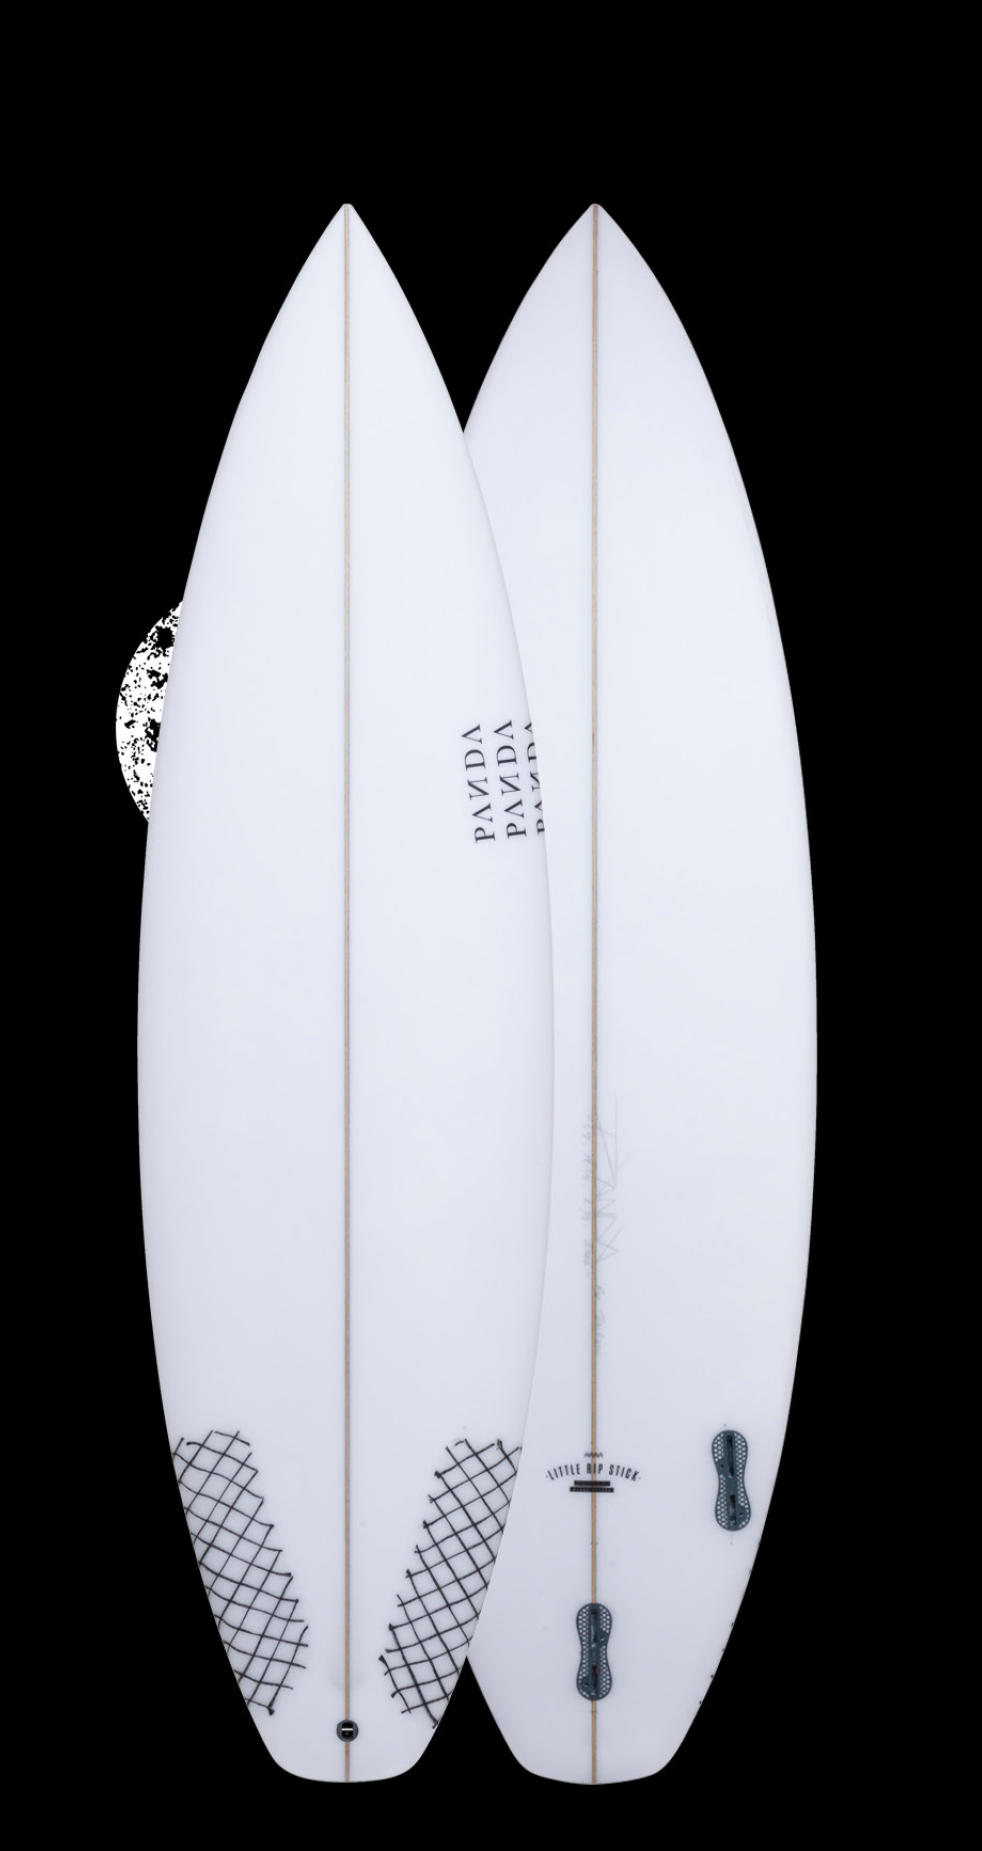 LITTLE RIP STICK This is our best selling shortboard. For what was our step down shortboard a few years ago, this has now become our all rounder. Suited perfectly for beach breaks from 2-5ft, it is a perfect step down from the Pandamonium model, with a little added nose and tail width. Ride 1 inch shorter than you are tall, 1/4 wider and 1/16 thicker than your standard shortboard. If you enjoy this board, then also give The Norts model (for hollower waves) or the Pandamoni- um (for slightly bigger, punchier waves) a whirl.